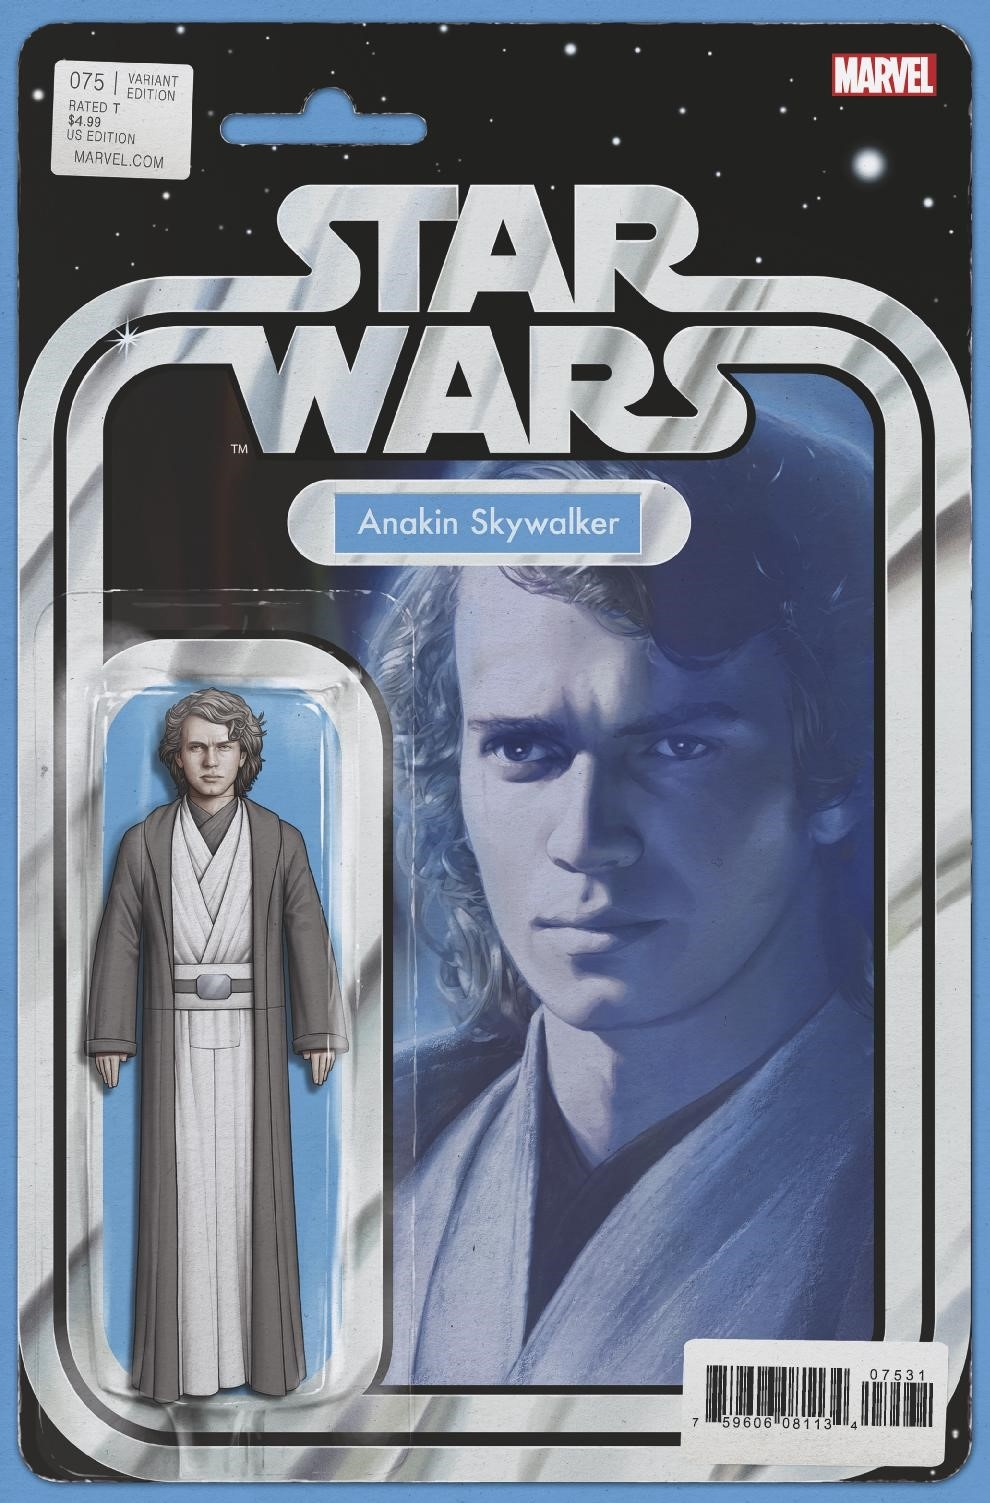 STAR WARS #75 CHRISTOPHER ACTION FIGURE VAR